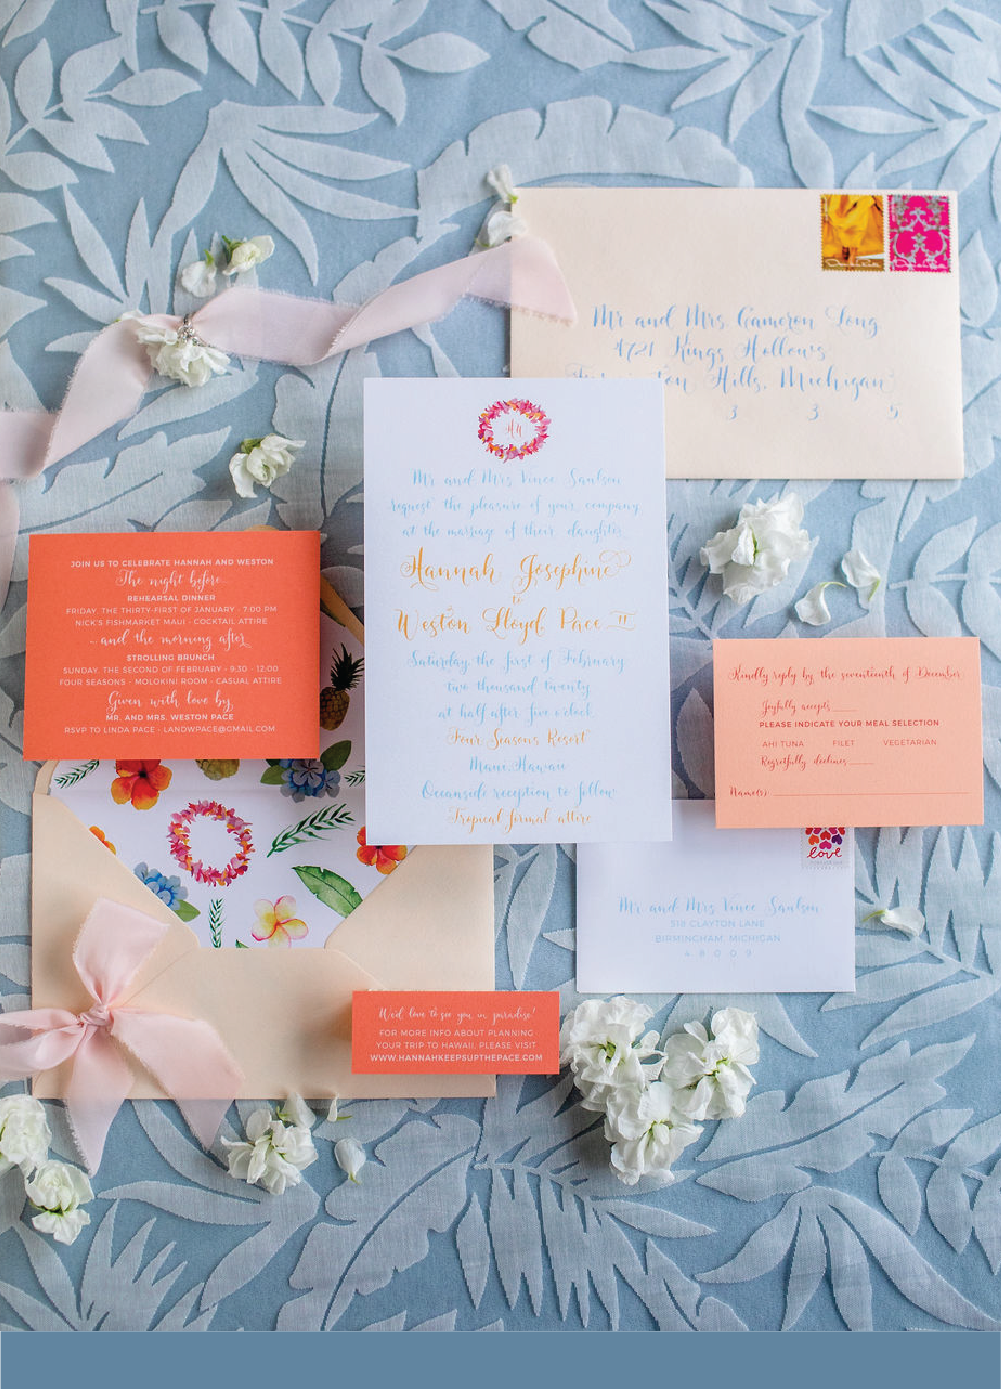 Coral and peach modern wedding invitations with calligraphy by Leah E. Moss Designs for wedding at Four Seasons Maui Hawaii